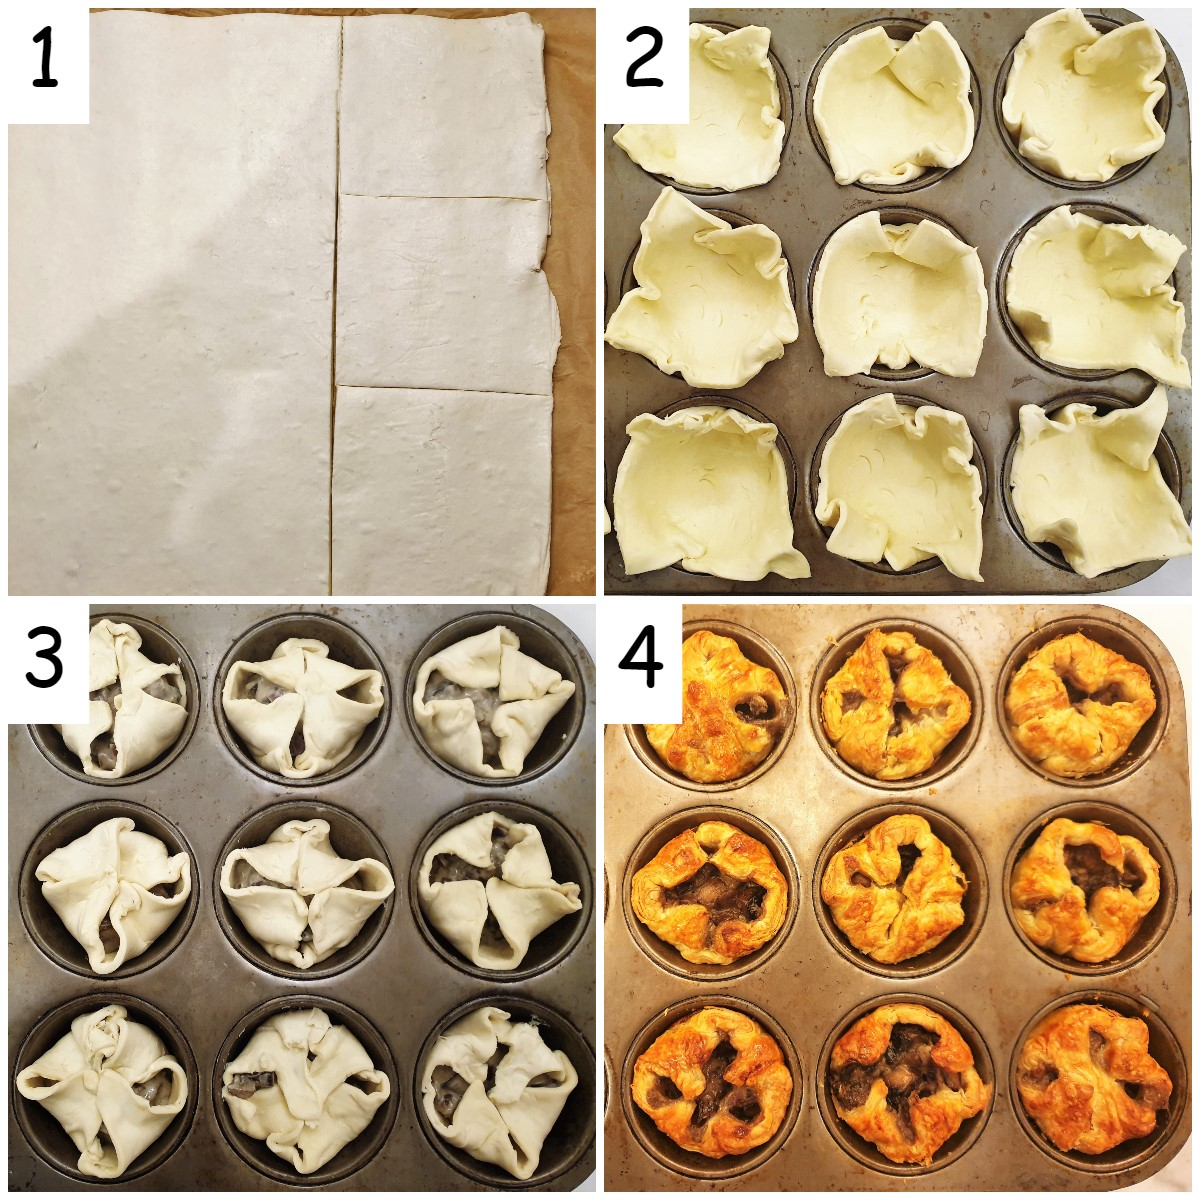 Steps for assembling and baking the mushroom tarts.